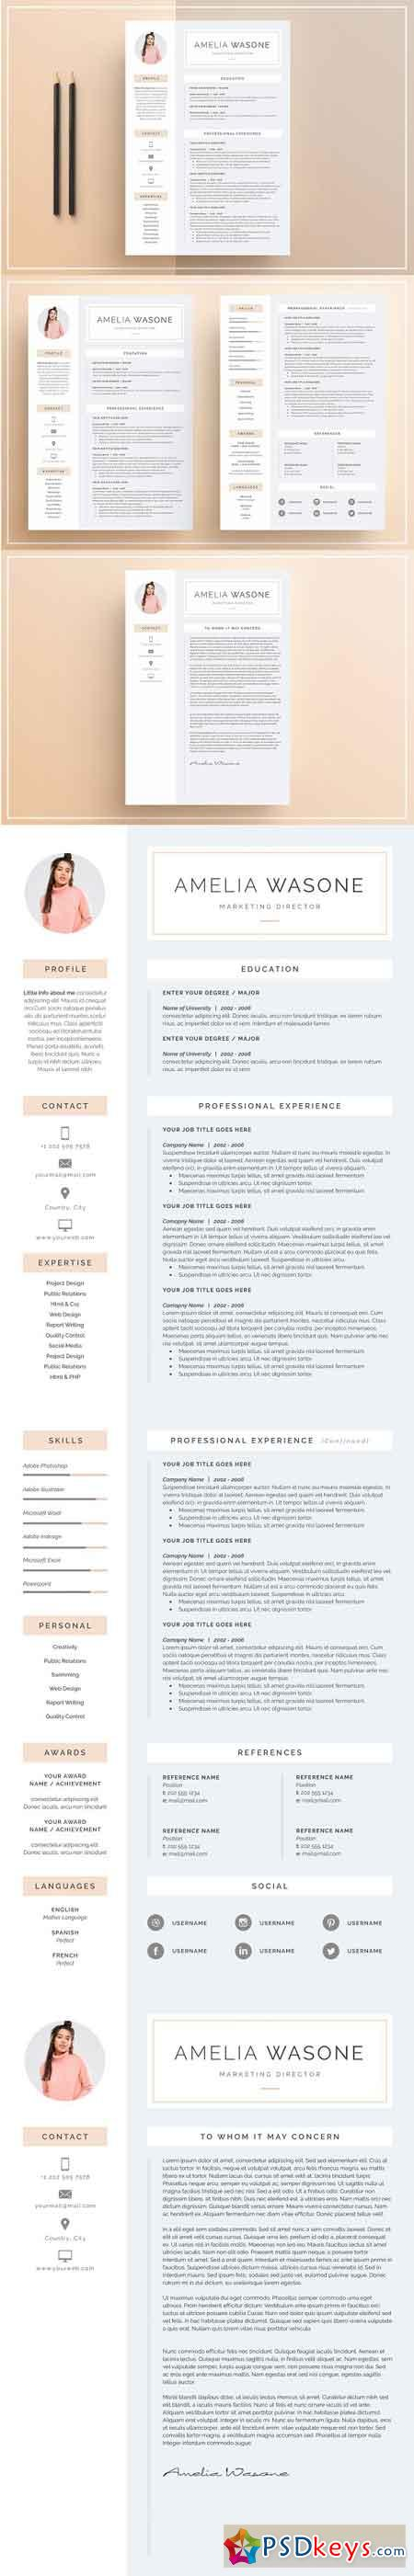 Word Resume & Cover Letter Template 1173571